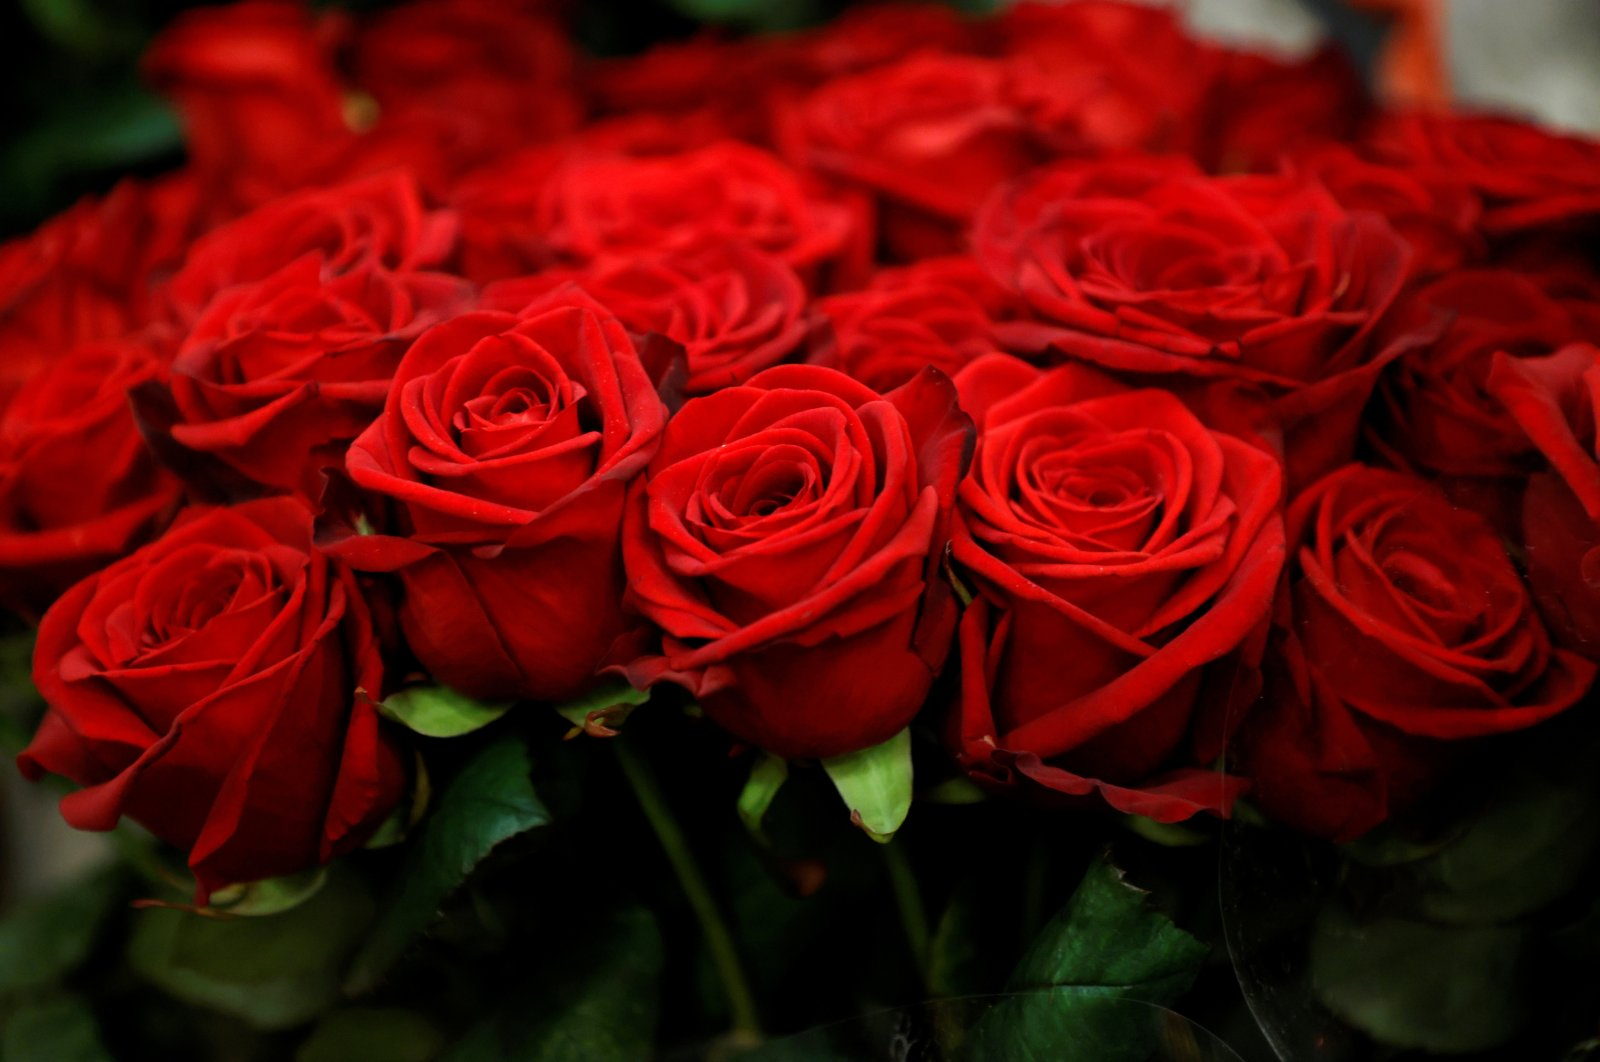 Red roses are displayed in a flower shop ahead of Valentine's Day in Paris, France, Feb. 12, 2021. (Reuters Photo)